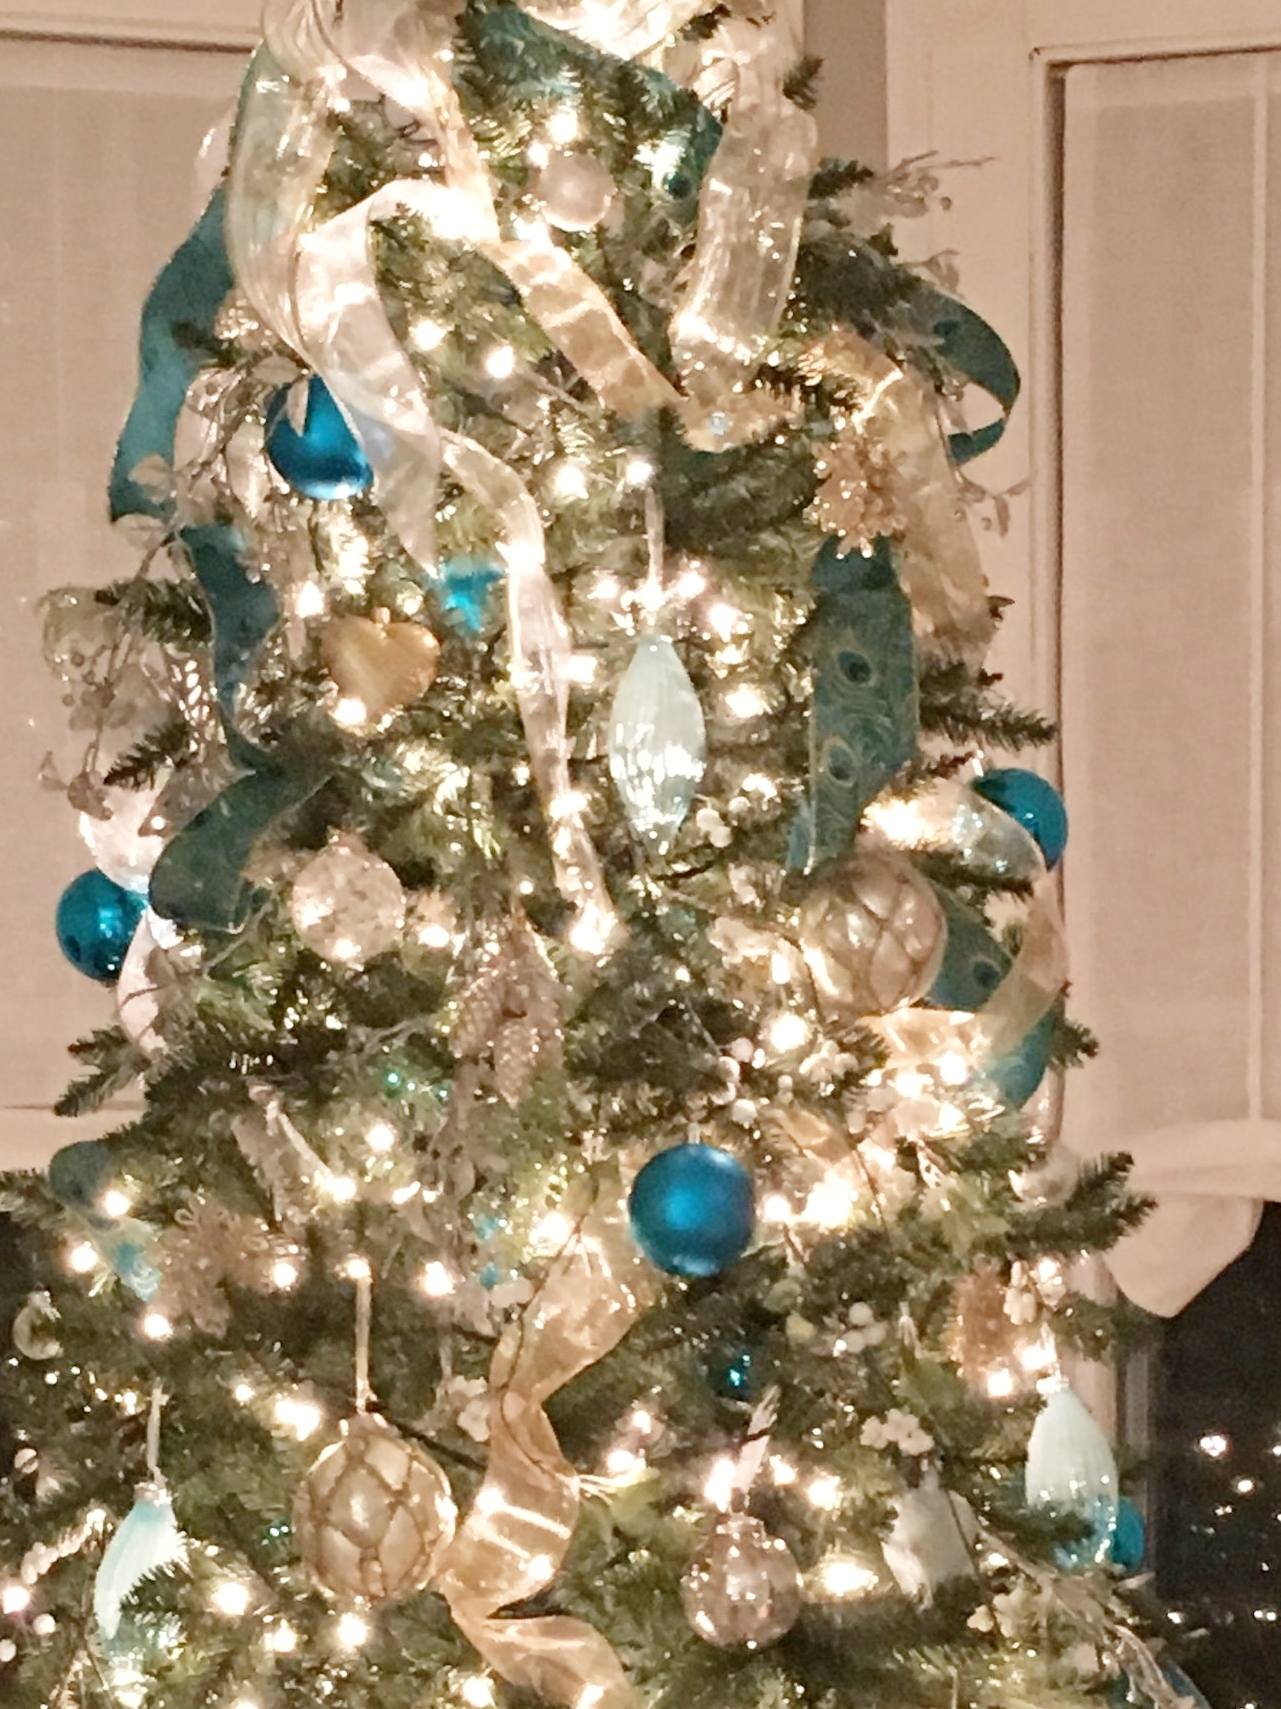 Tree with gold, silver and peacock ribbon embellished with white and silver berry sprigs, aqua teardrop glass ornaments, a mix of matte, sparkly, and shiny teal balls, mercury glass ornaments in a variety of sizes and shapes, and champagne glass pinecone clusters